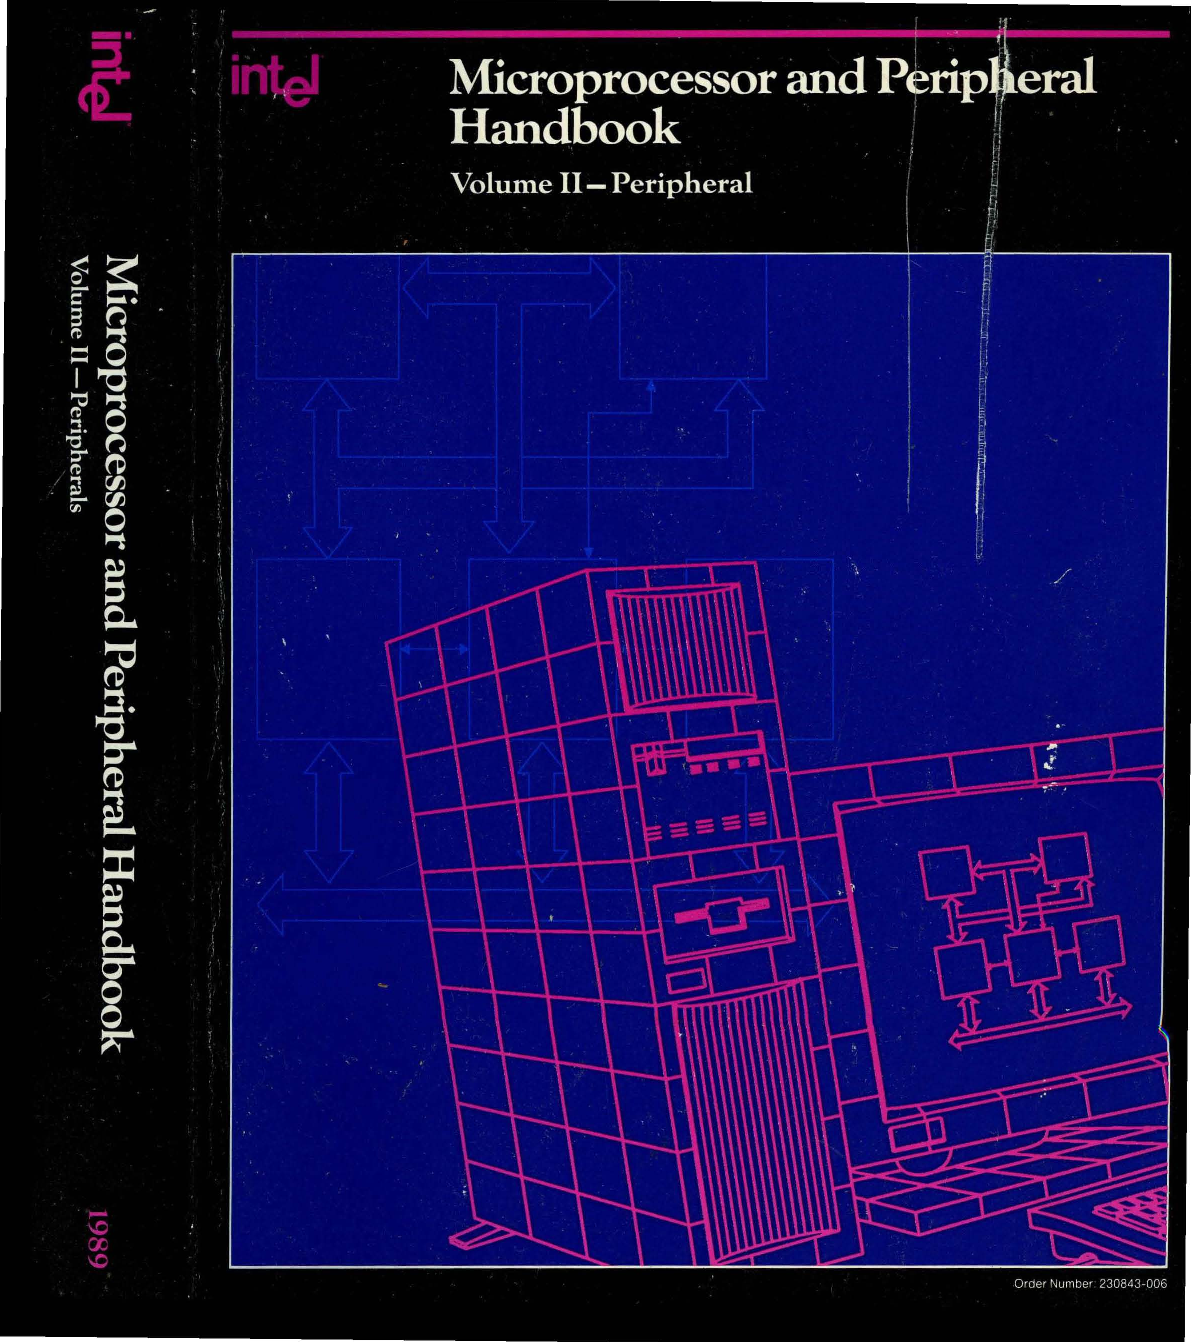 1989 Microprocessor And Peripheral Handbook Volume 2 Circuits Moreover Sto Atch Circuit Diagram Likewise Running Led